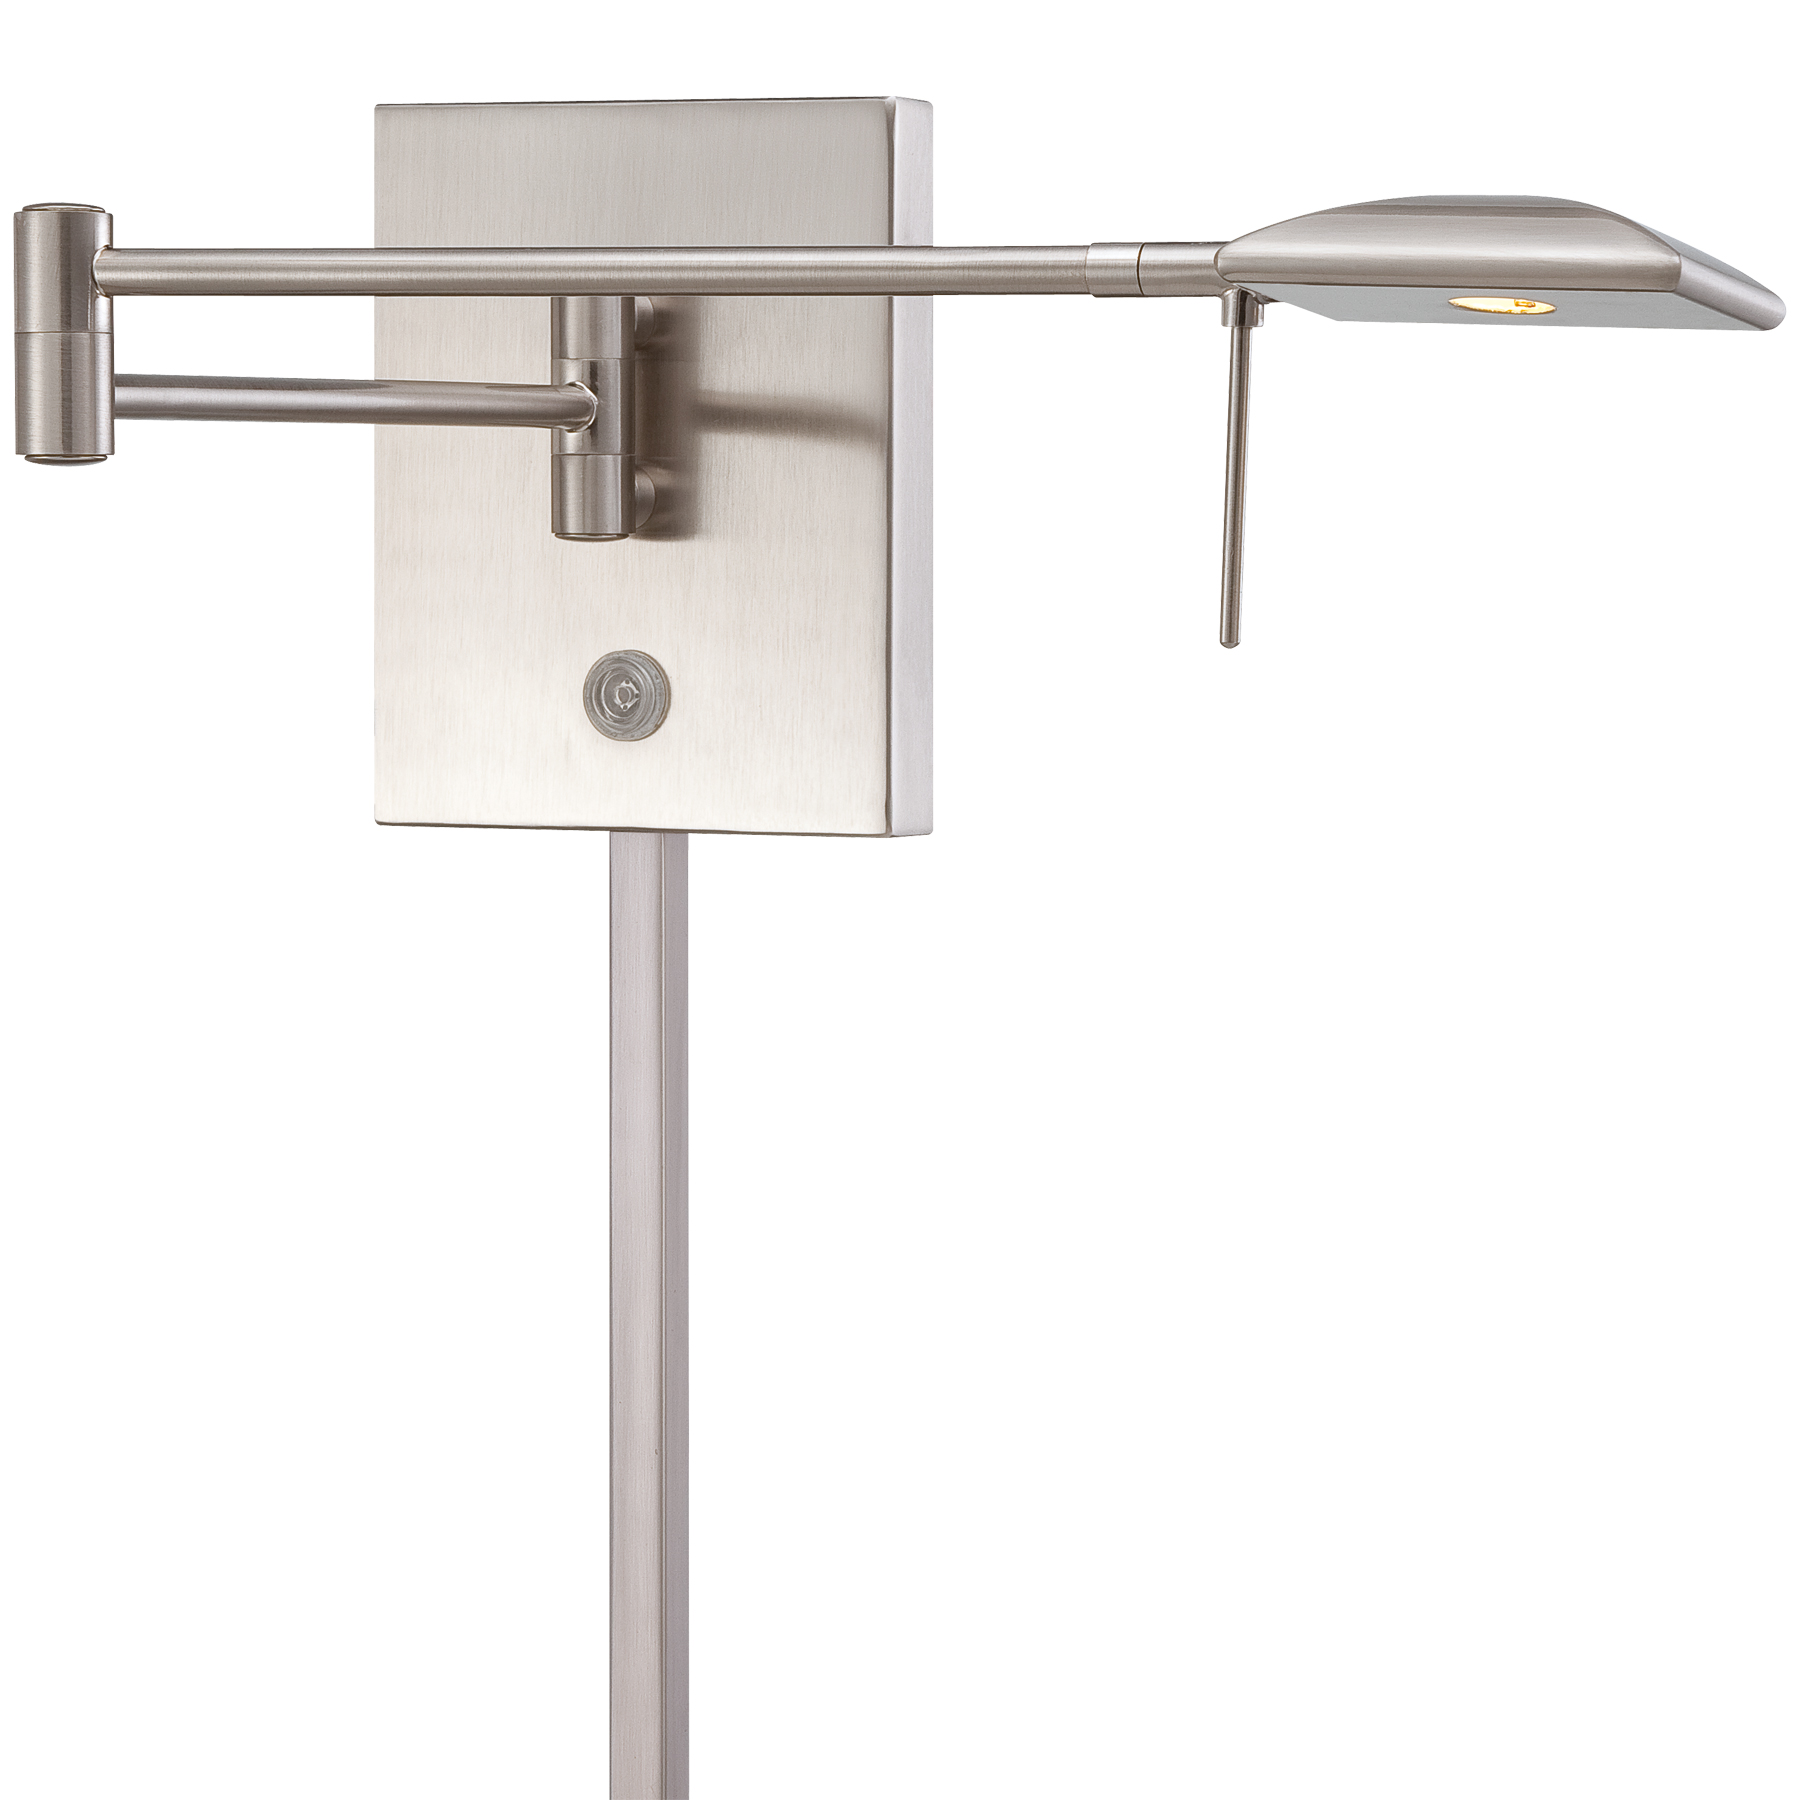 led swing arm wall sconce by george kovacs  p - p led swing arm wall sconce by george kovacs  p